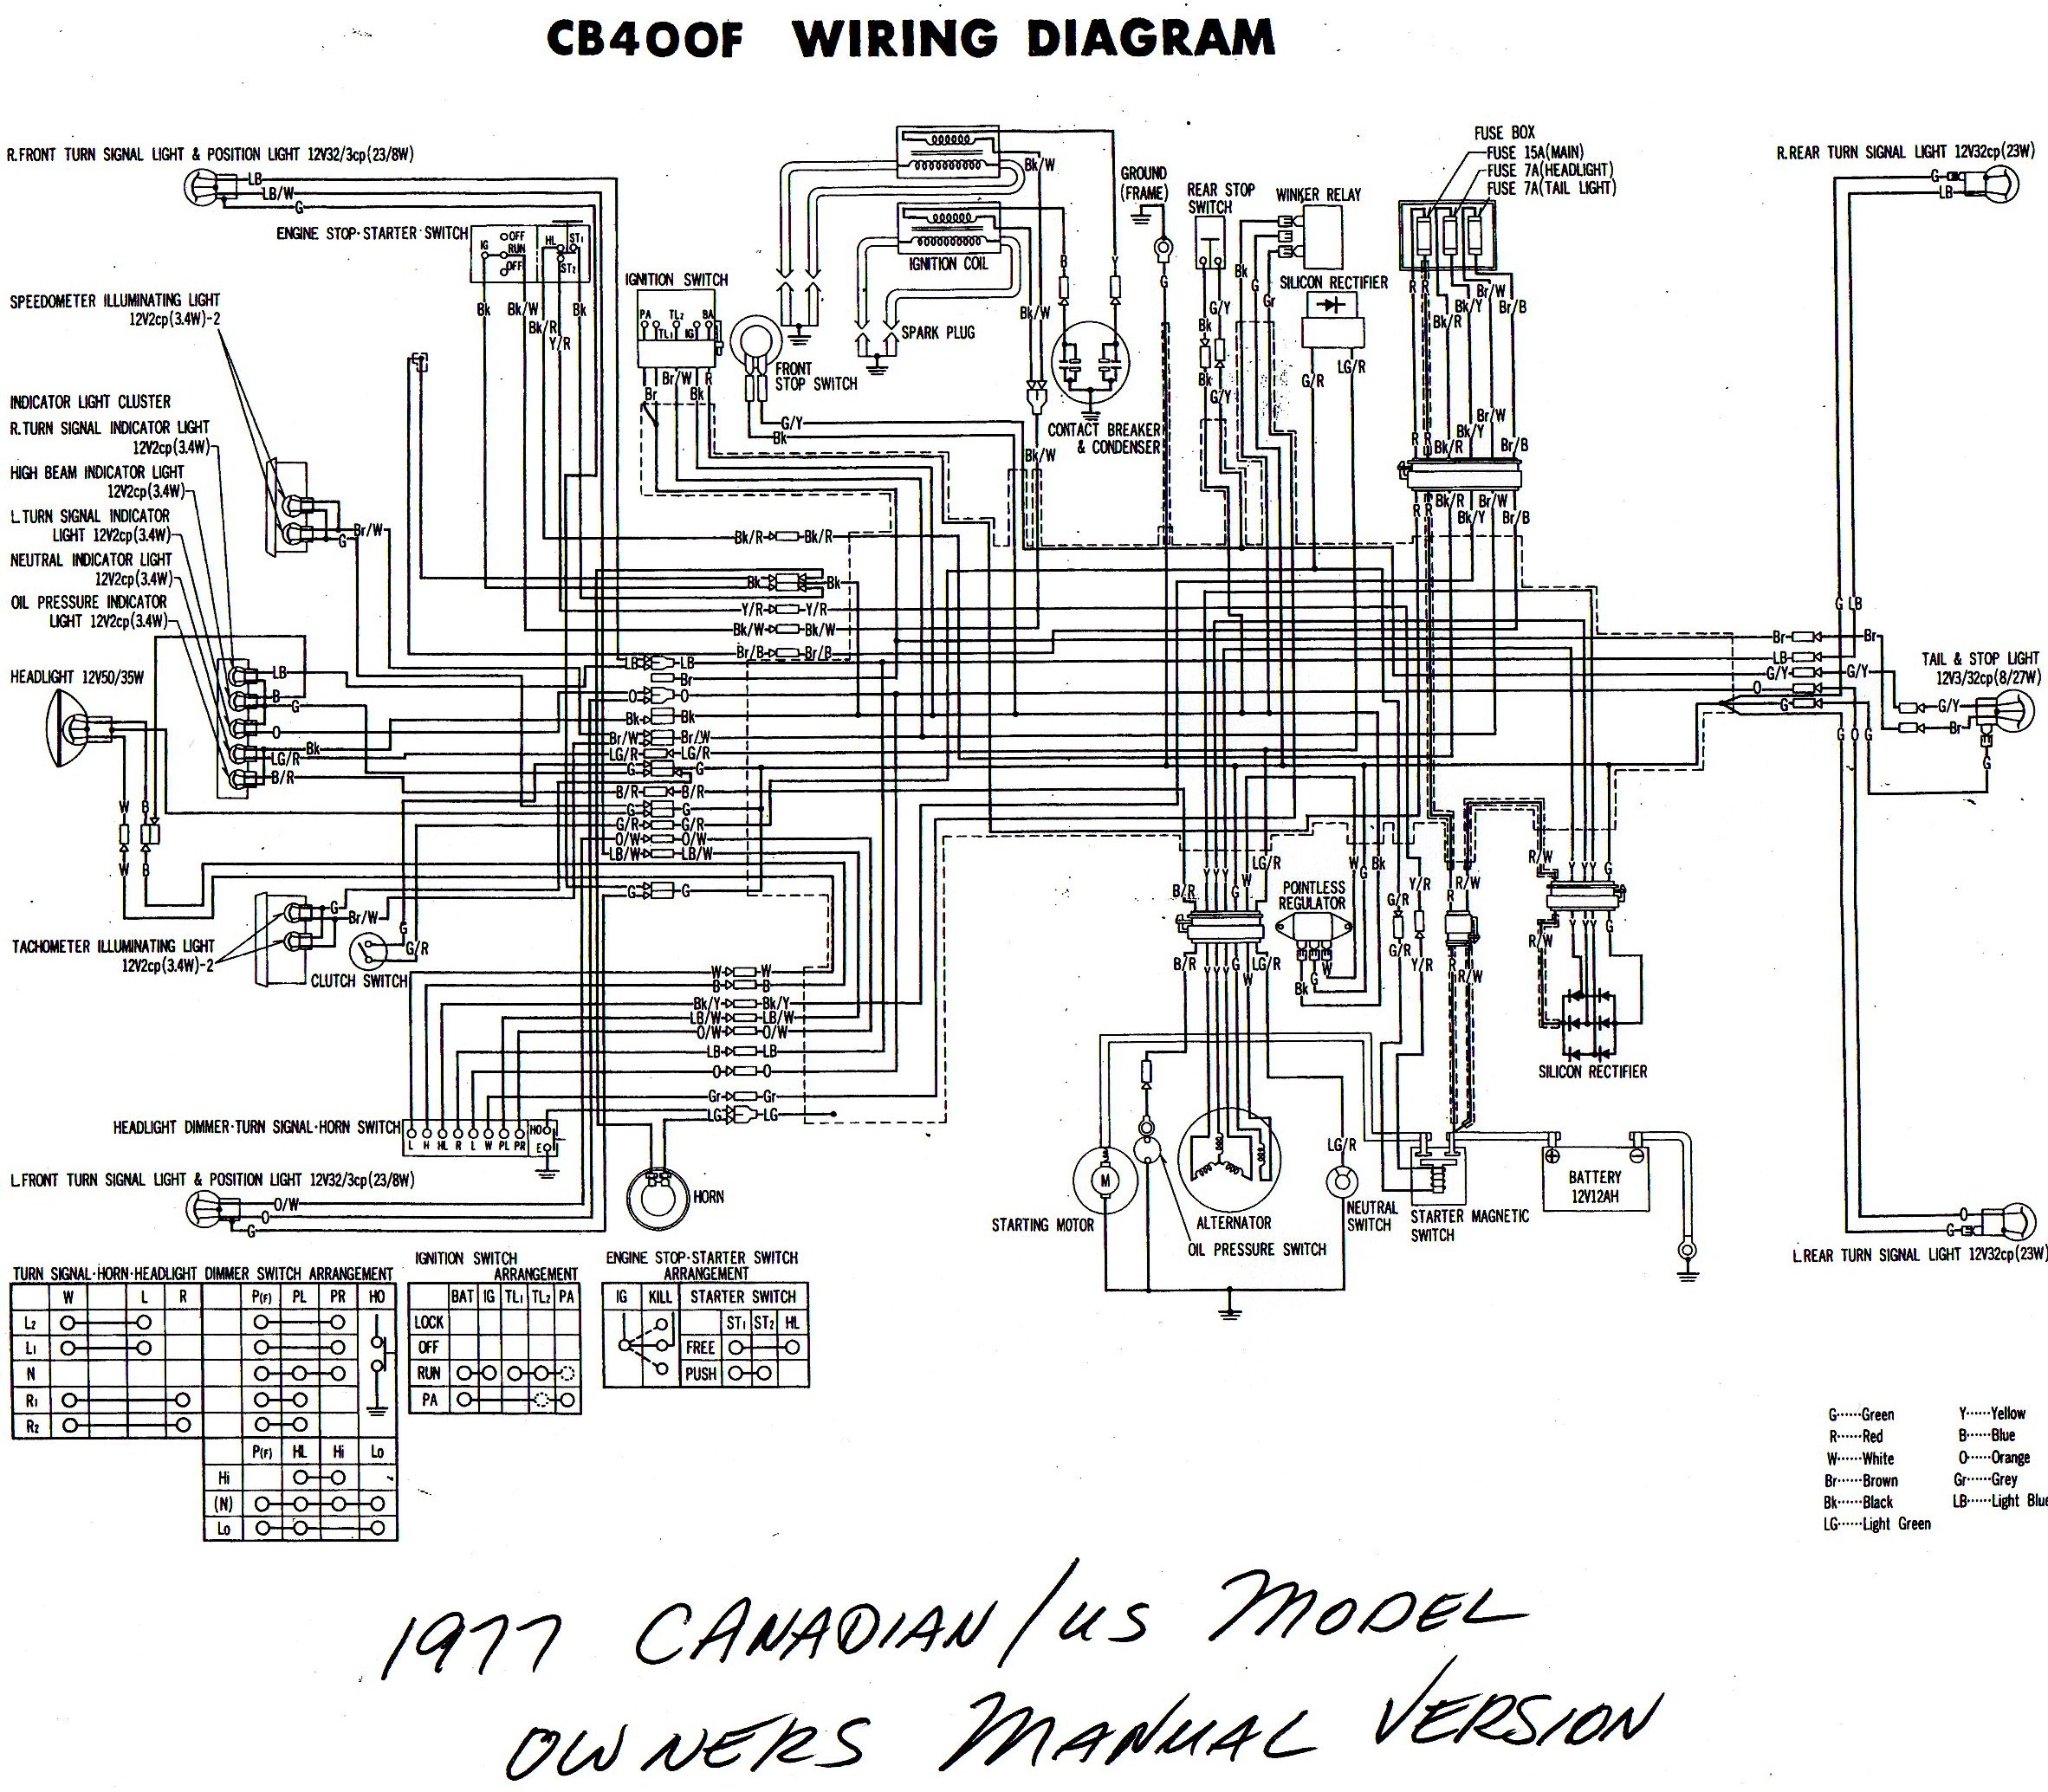 WD40077 cb400f www.k-four.net wiring diagram at readyjetset.co